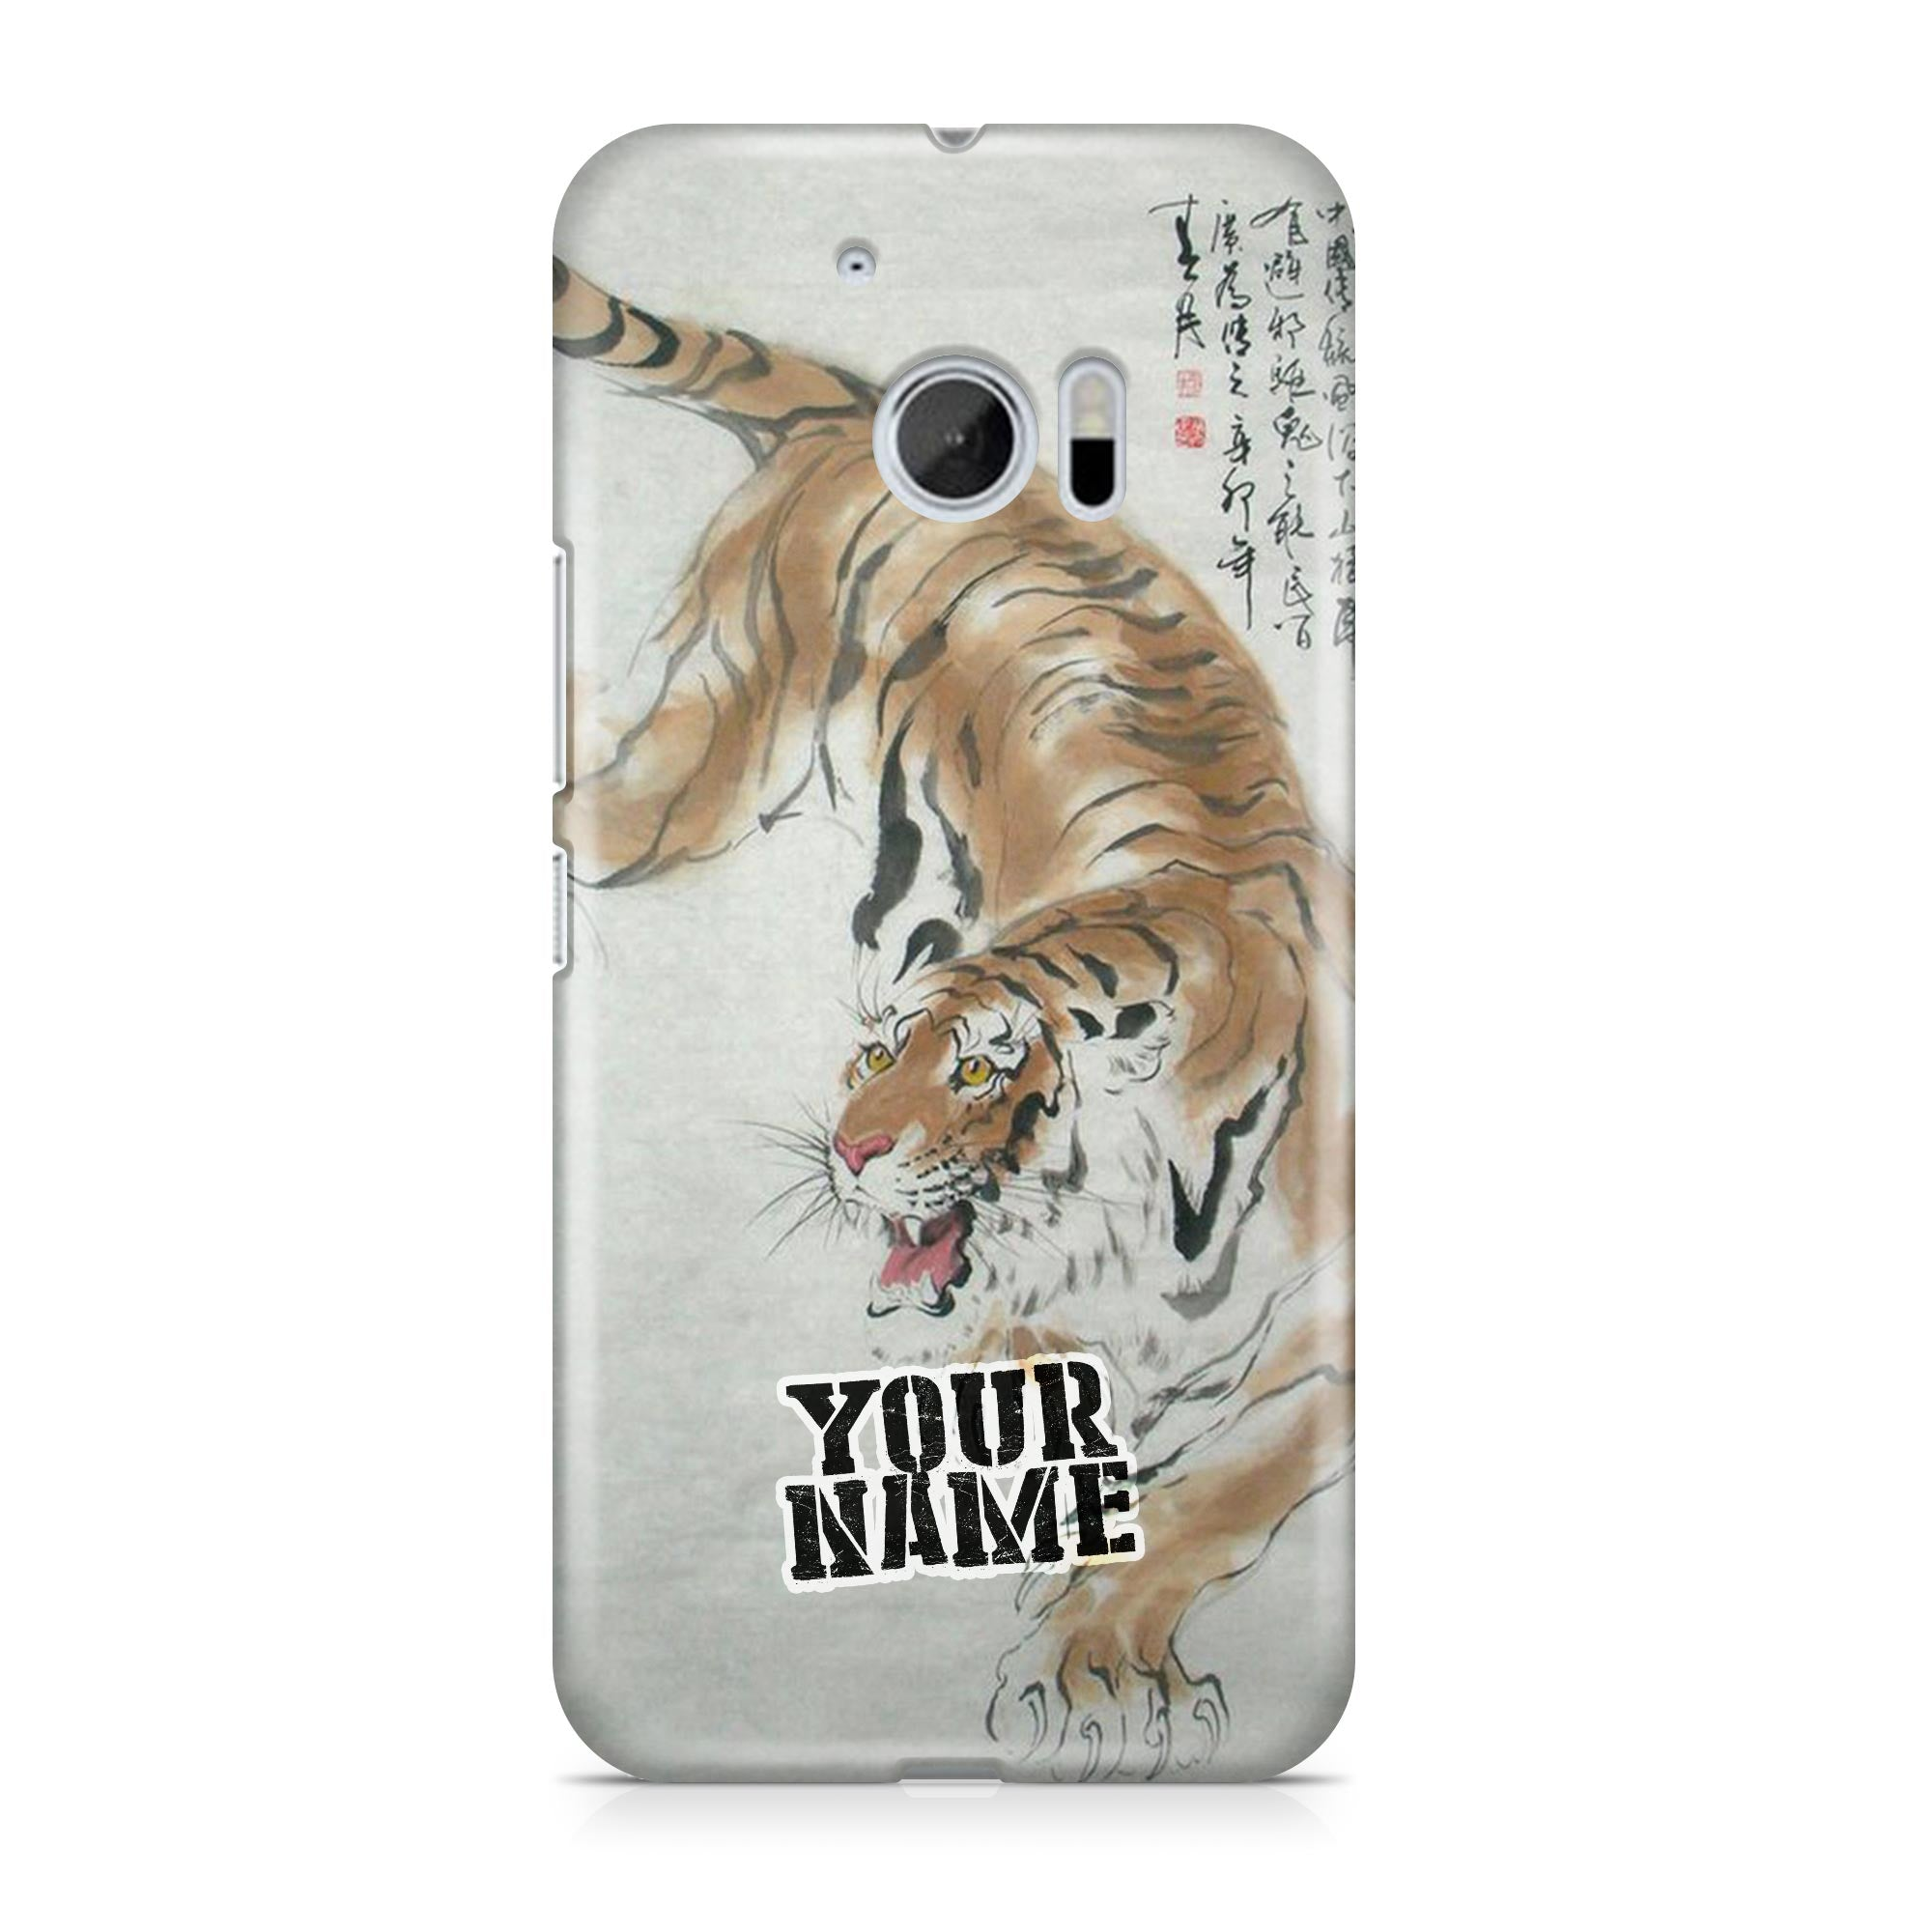 Japanese Tiger Art Paints Pets Lion Chinese Drawings Phone Cases Cover